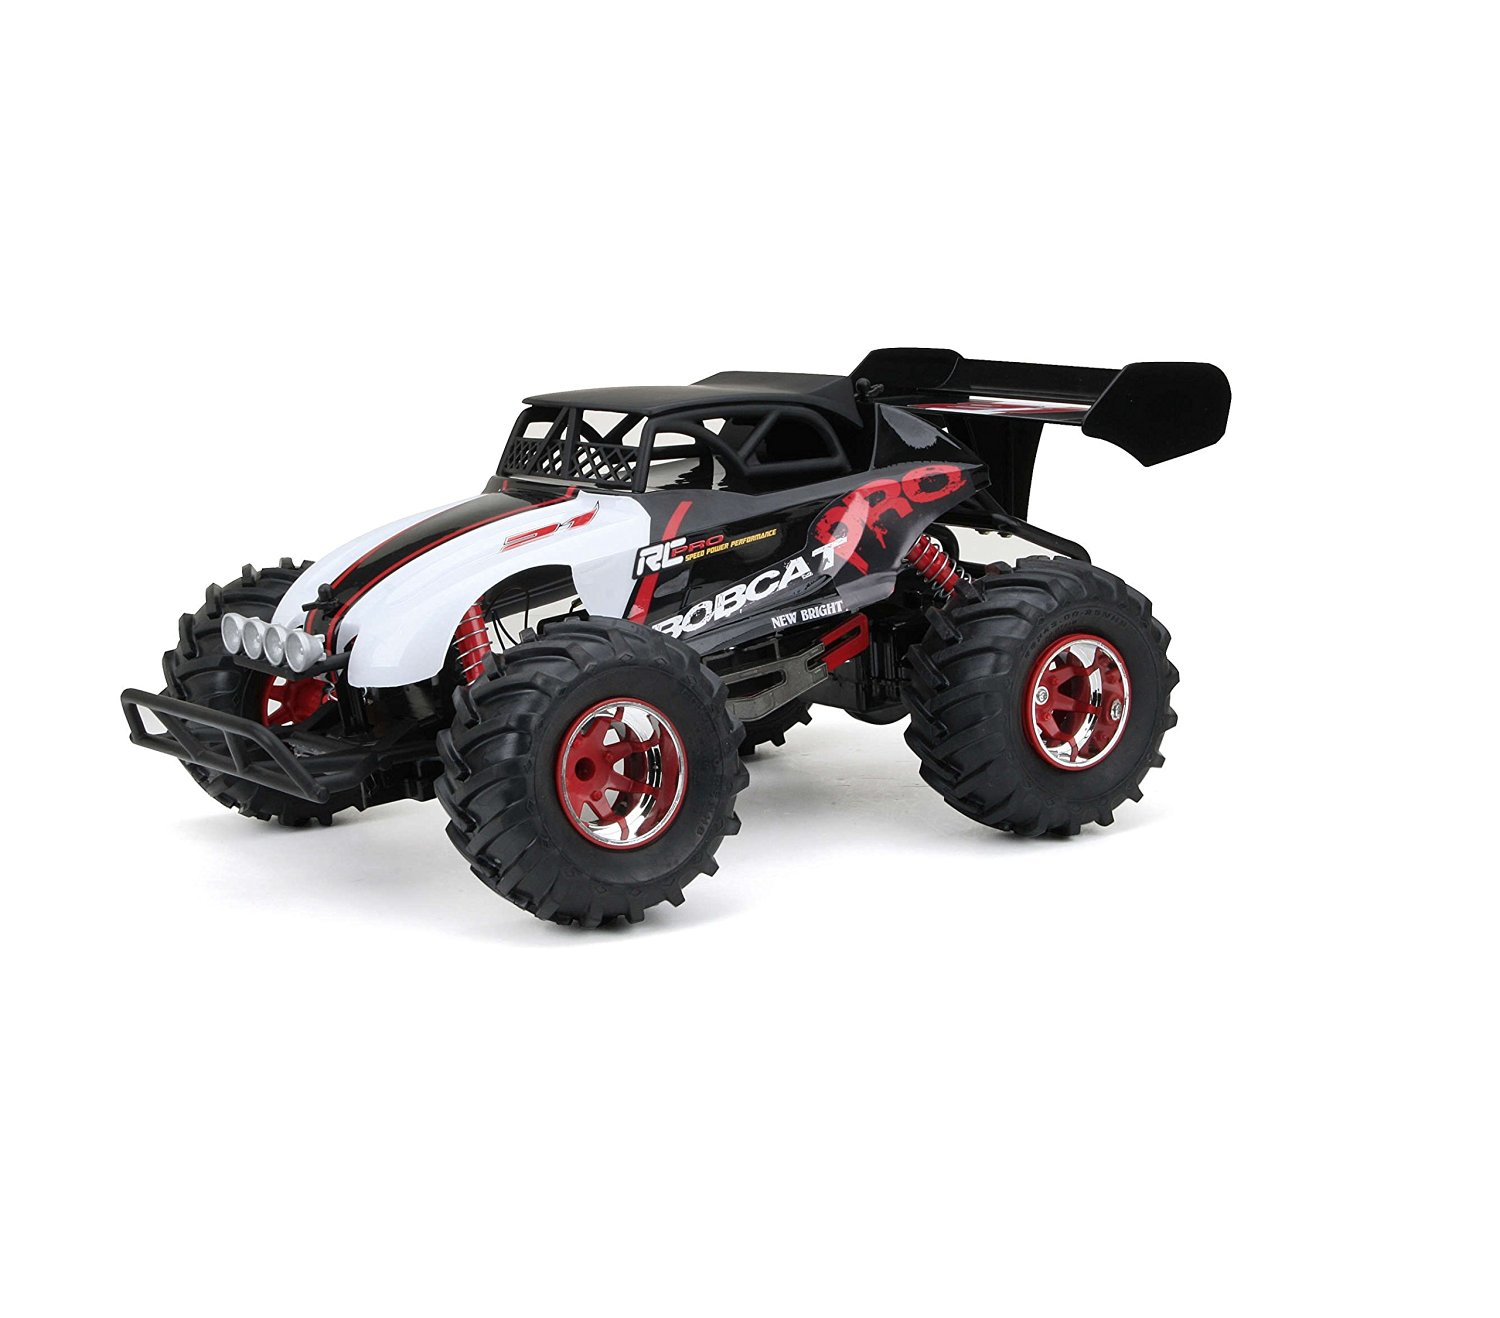 Rc Cars-Monster Trucks- New Bright Remote Control Full Function Pro Bobcat1:10 scale- Cars Toys--Left-right steering, forward-reverse drive Lightweight-R.C. Pro Line is all about speed, power and performance. With touch suspension, rugged terrain is no problem and a 12.8V lithium ion battery gives